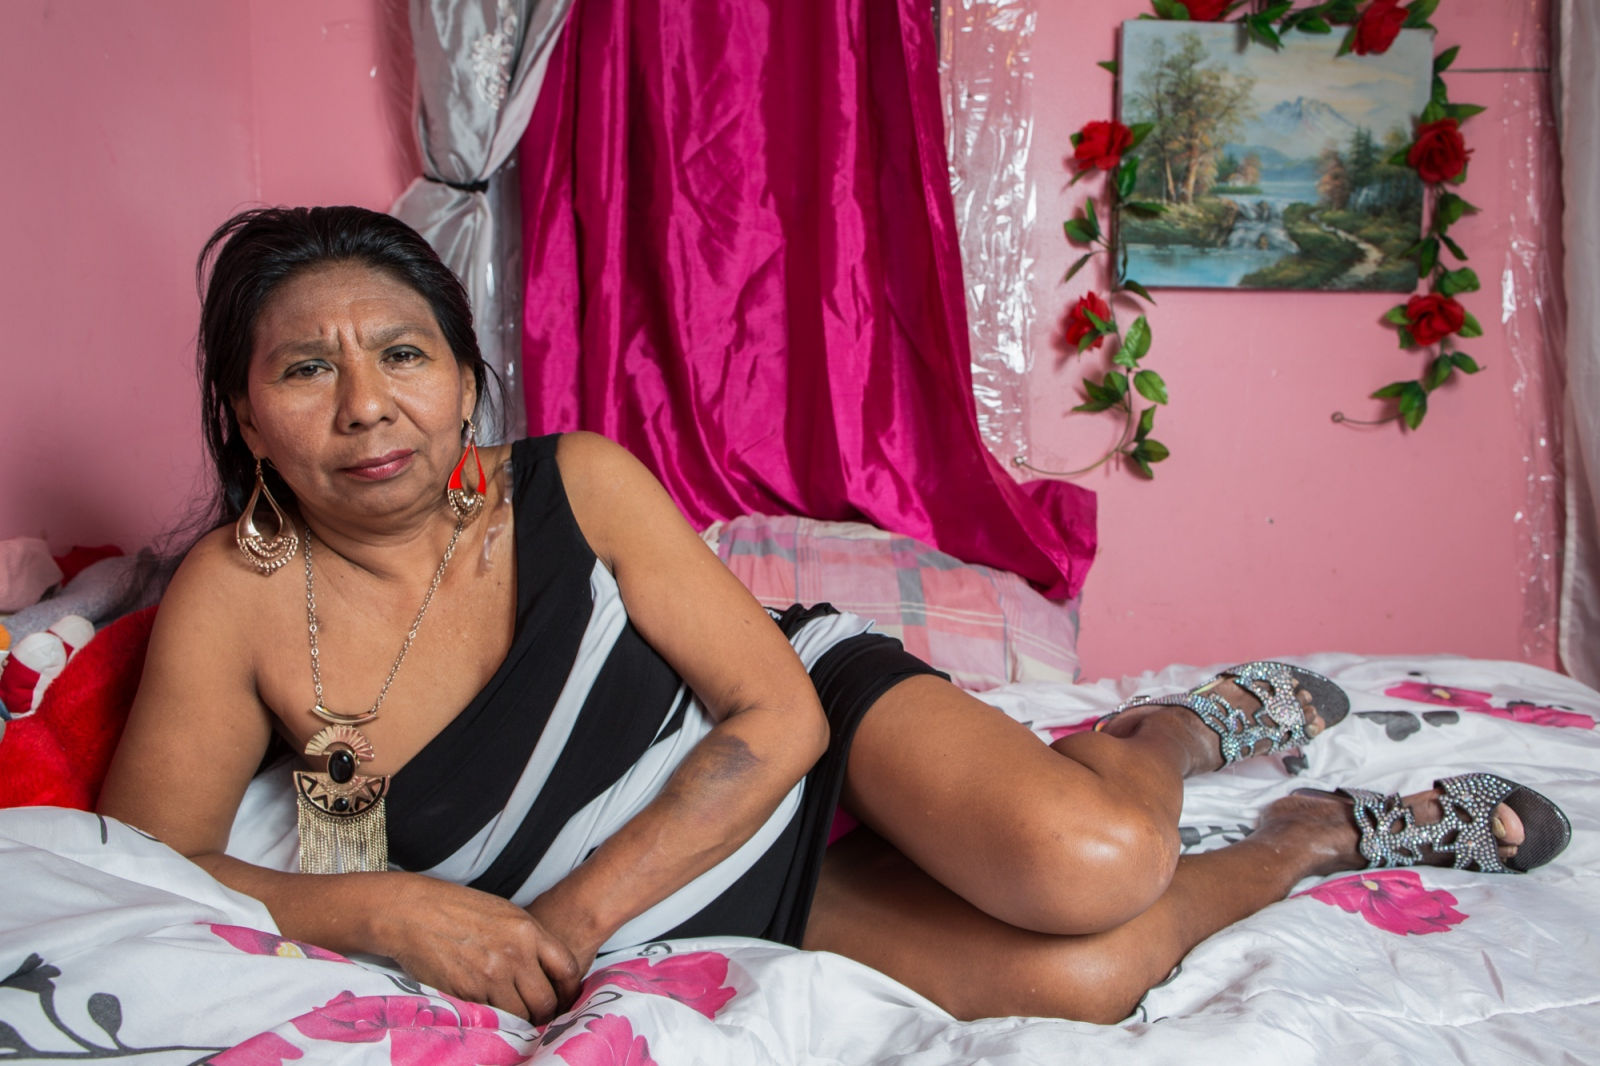 "Dionisia Martínez , in her bedroom at 45th. street in Sunset Park, Brooklyn. She is a singer and dancer of Mexican folklore, born in Atencingo, Puebla, based in New York since 2002. Since then she has worked washing dishes in restaurants, selling balloons and cleaning. But her passion is singing. She is better known as ""Lupe Cantarrecio"" (Lupe ""who sings out loud""). She has a role in the documentary ""Me Voy"" (I go) directed by the film making collective Mu Media."